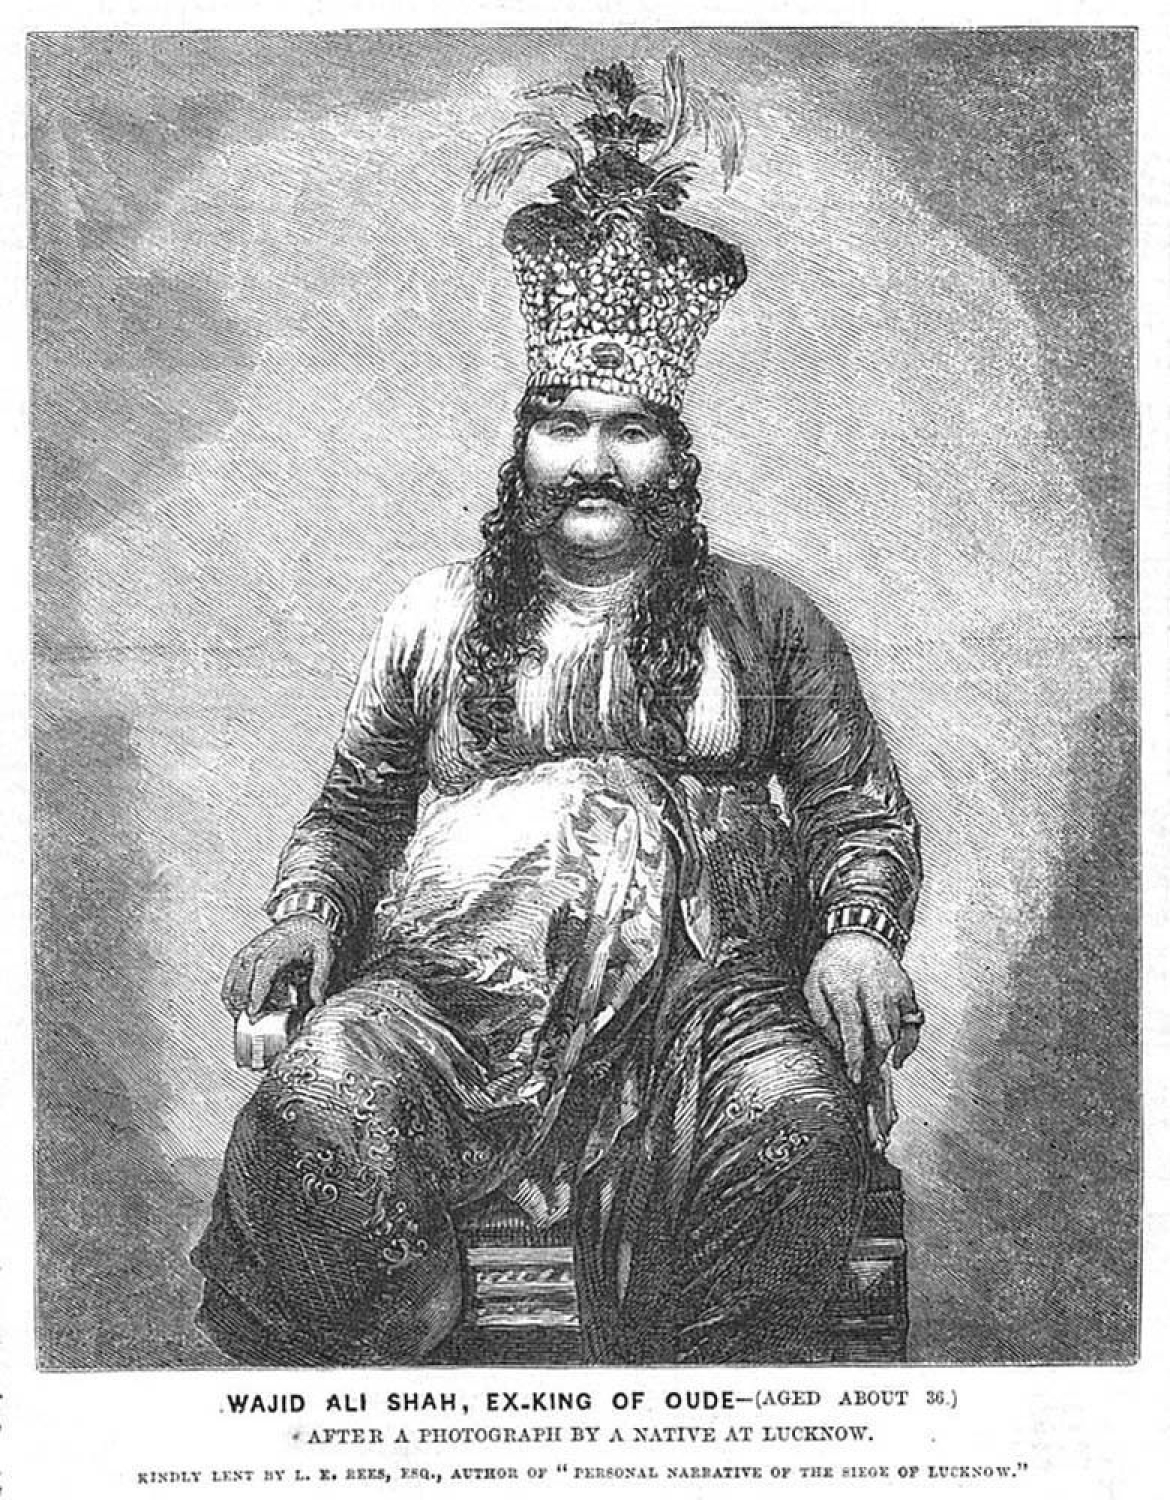 Wajid Ali Shah, Last King of Awadh and son of Queen Malika Kishwar